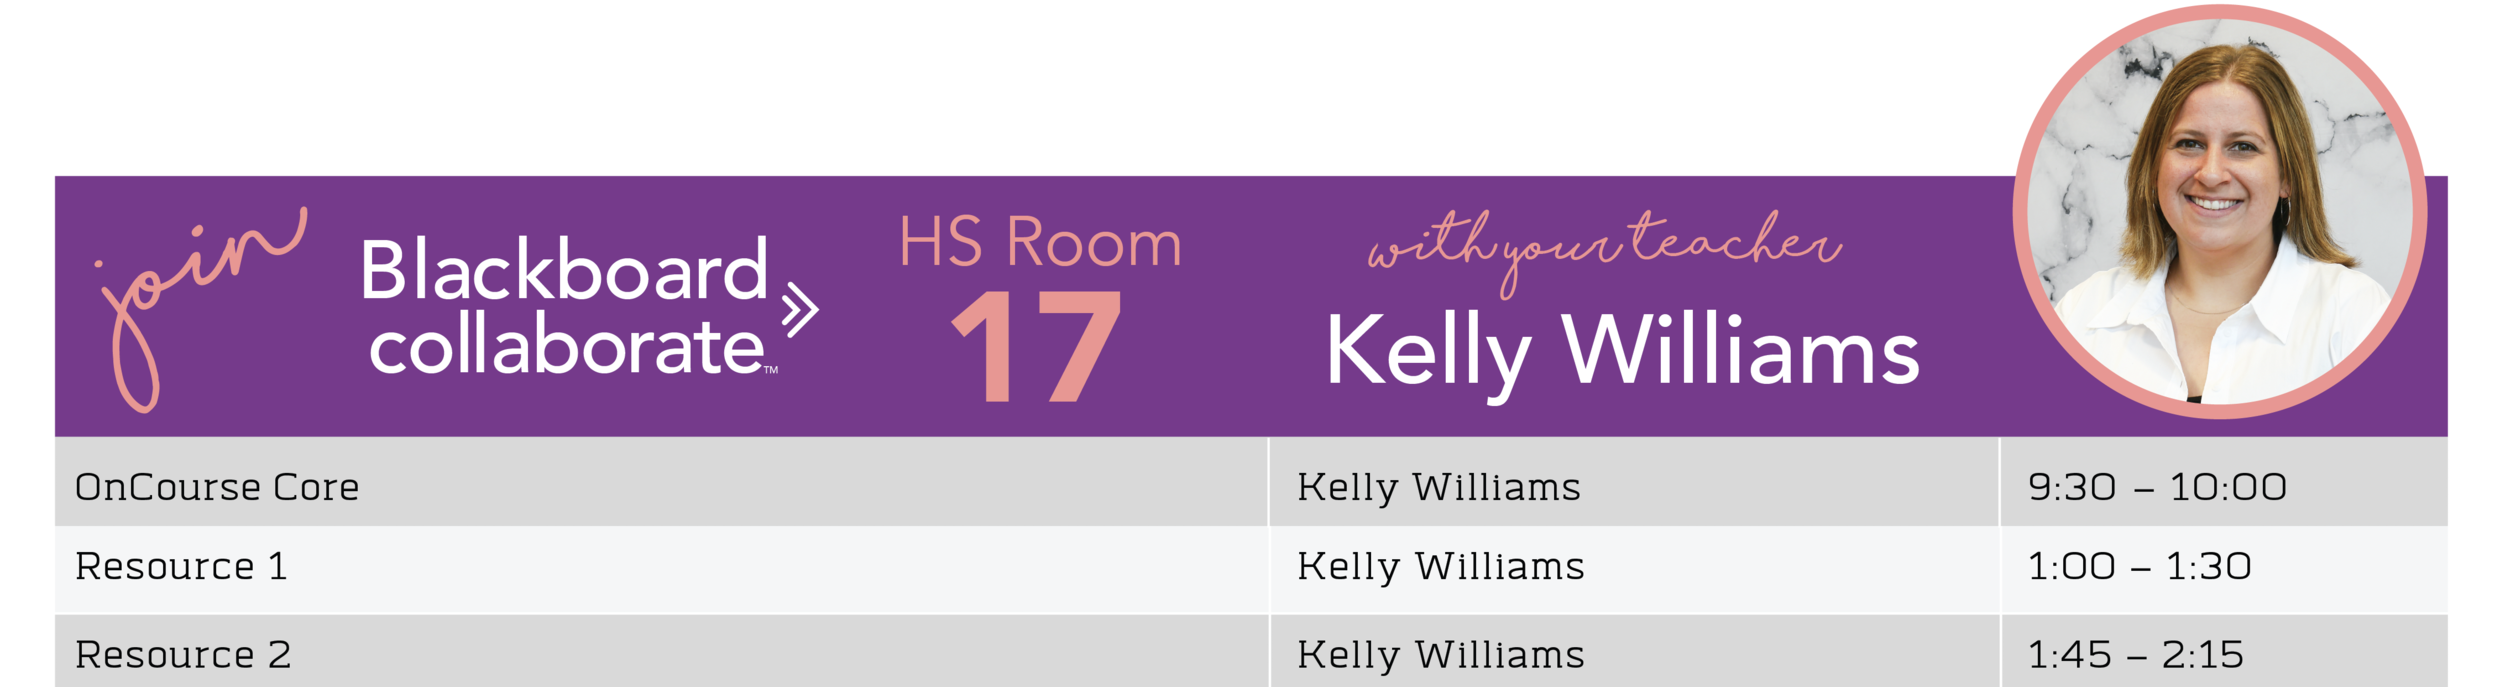 Kelly Williams Blackboard Schedule